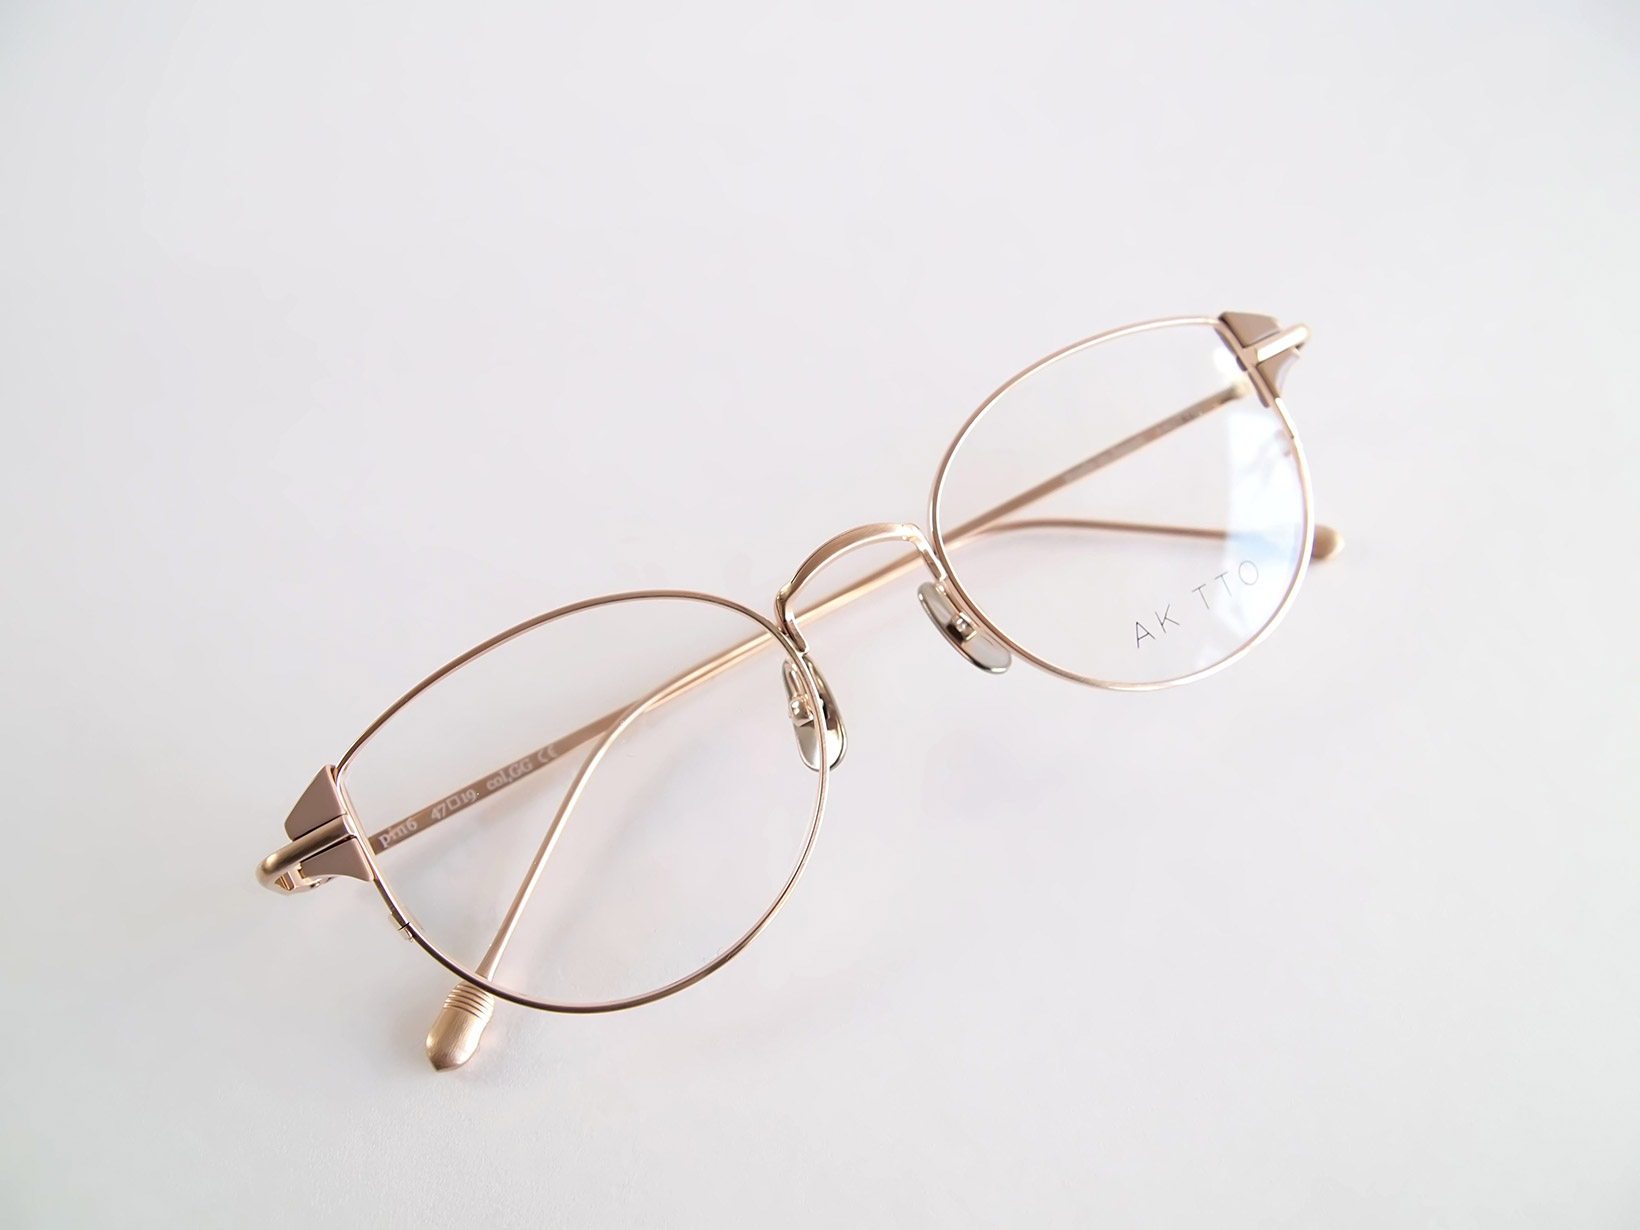 AKITTO 2019-1st pin6 color|GG size:47□19 material:titanium+acetate price:¥42,000-(+tax)